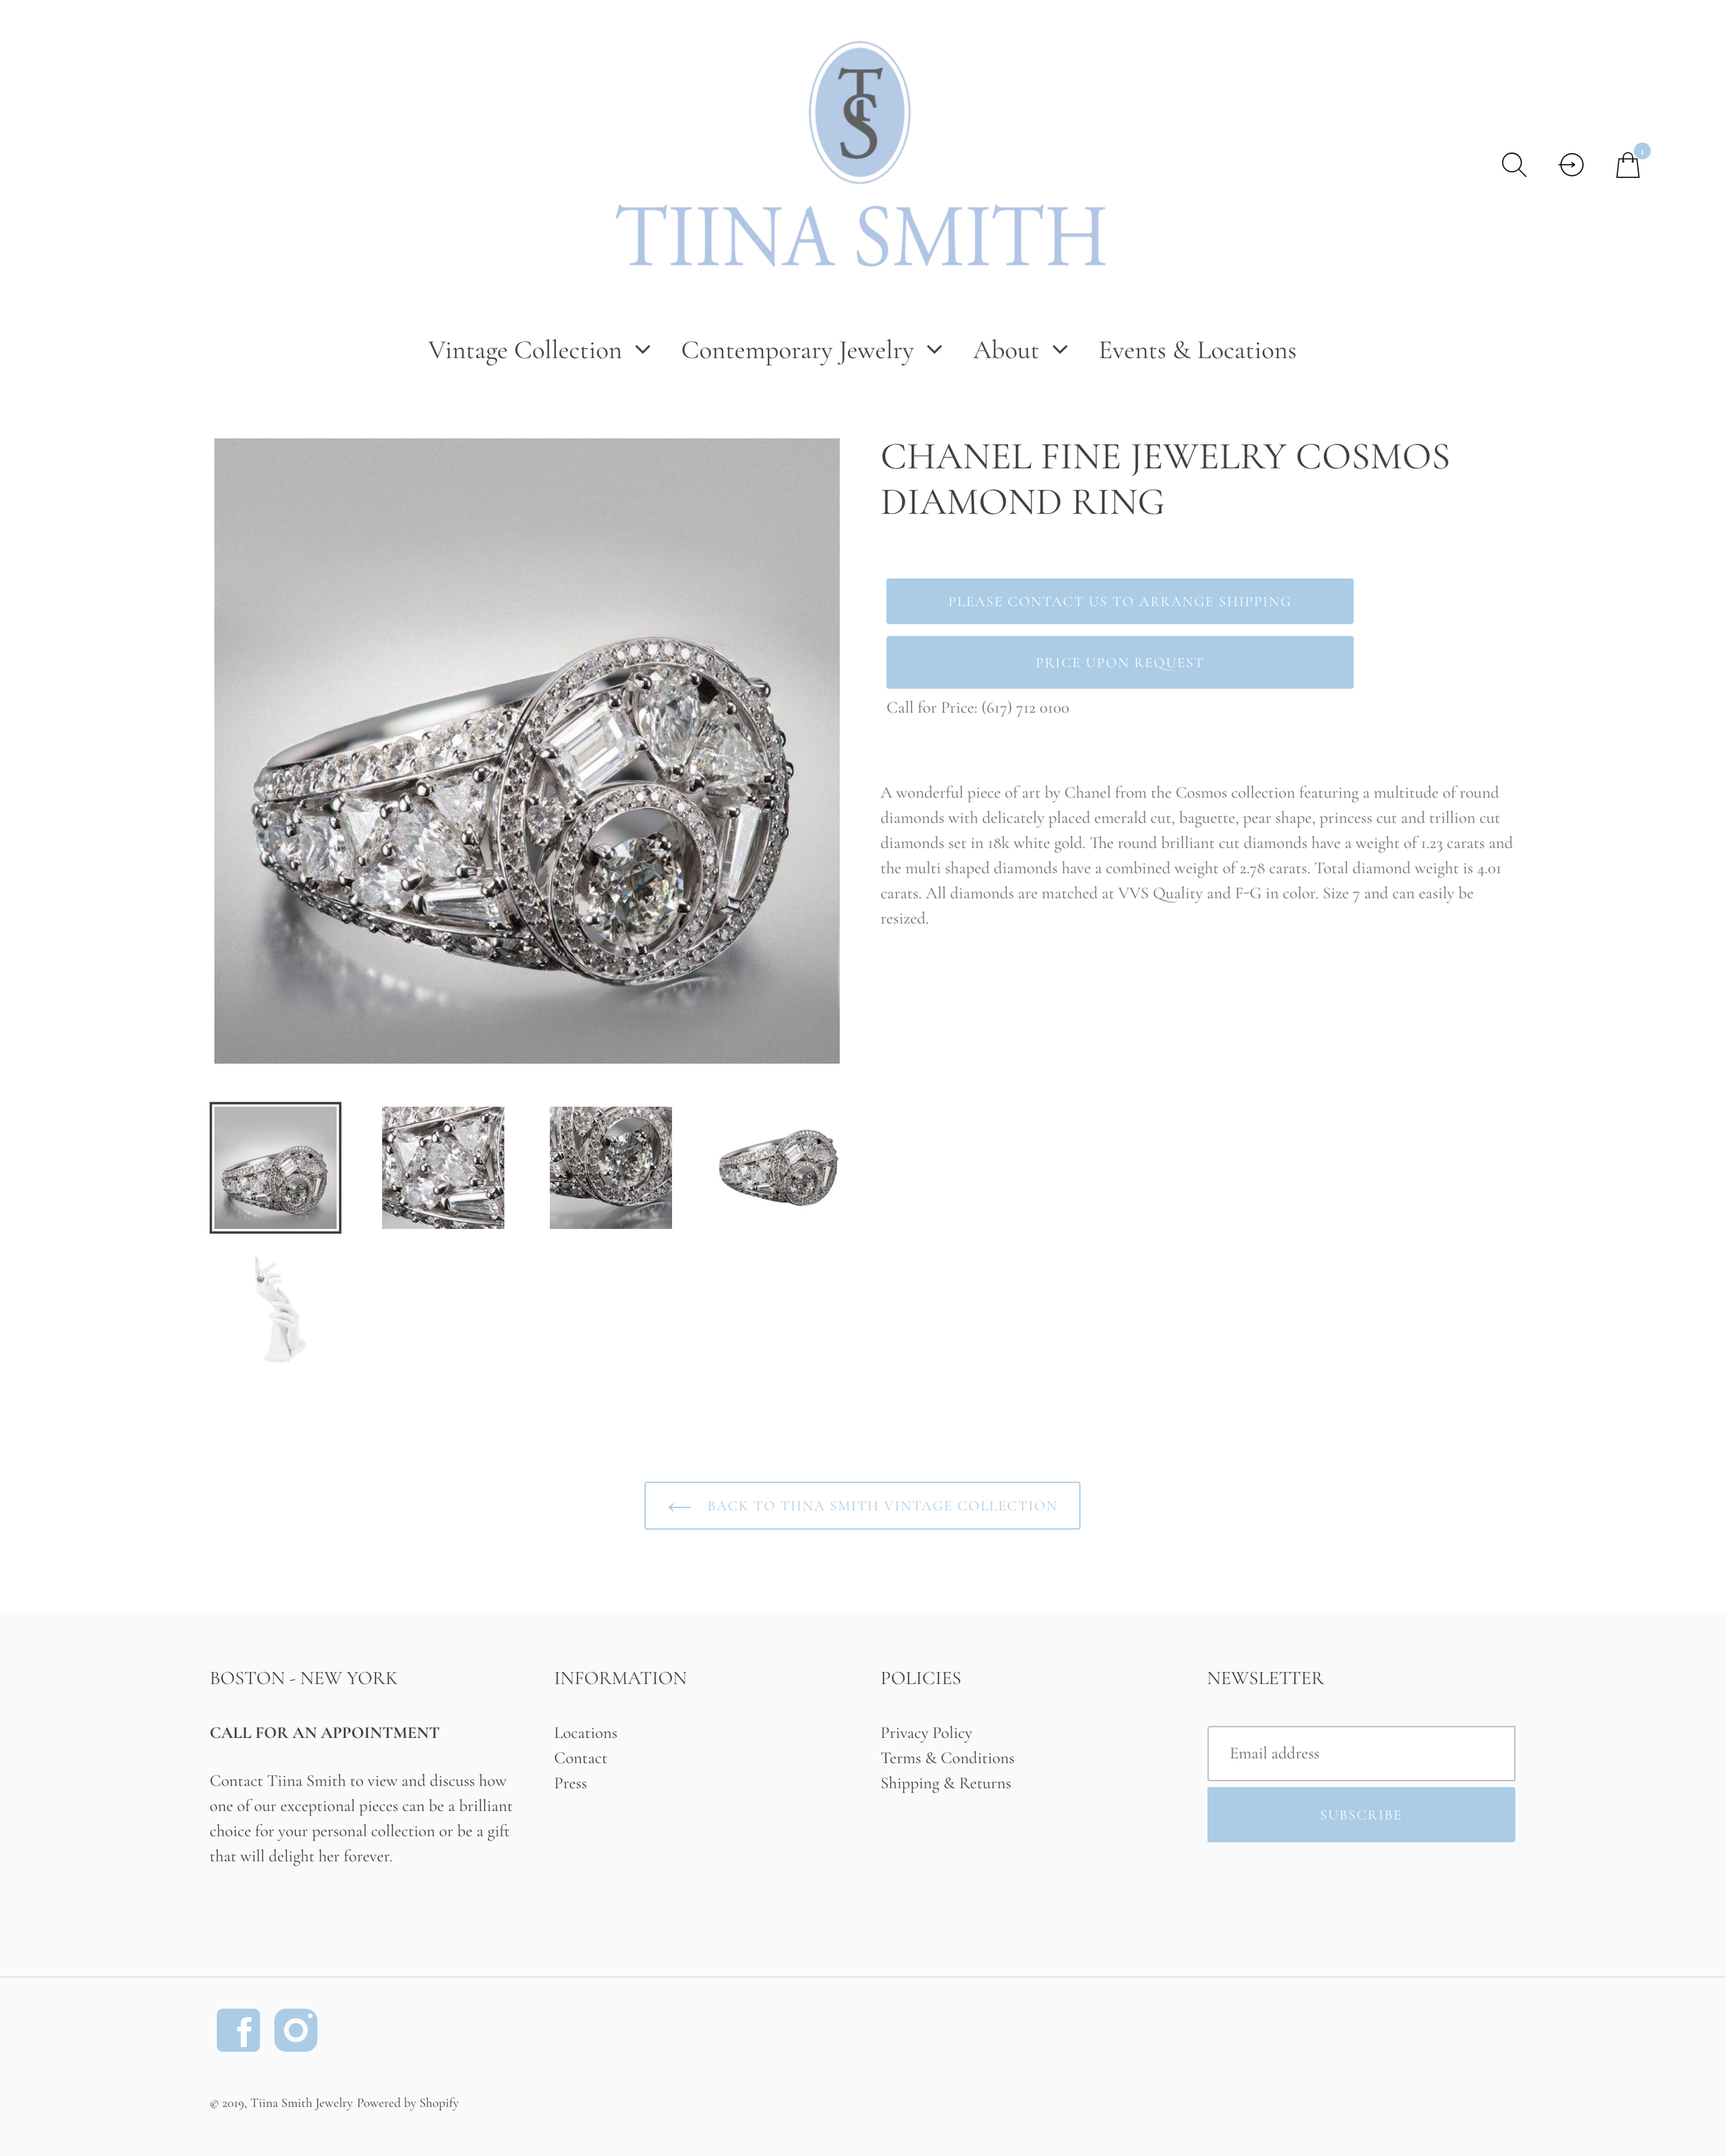 screencapture-tiinasmithjewelry-collections-tiina-smith-vintage-collection-products-chanel-fine-jewelry-cosmos-diamond-ring-2019-03-06-17_35_03.png